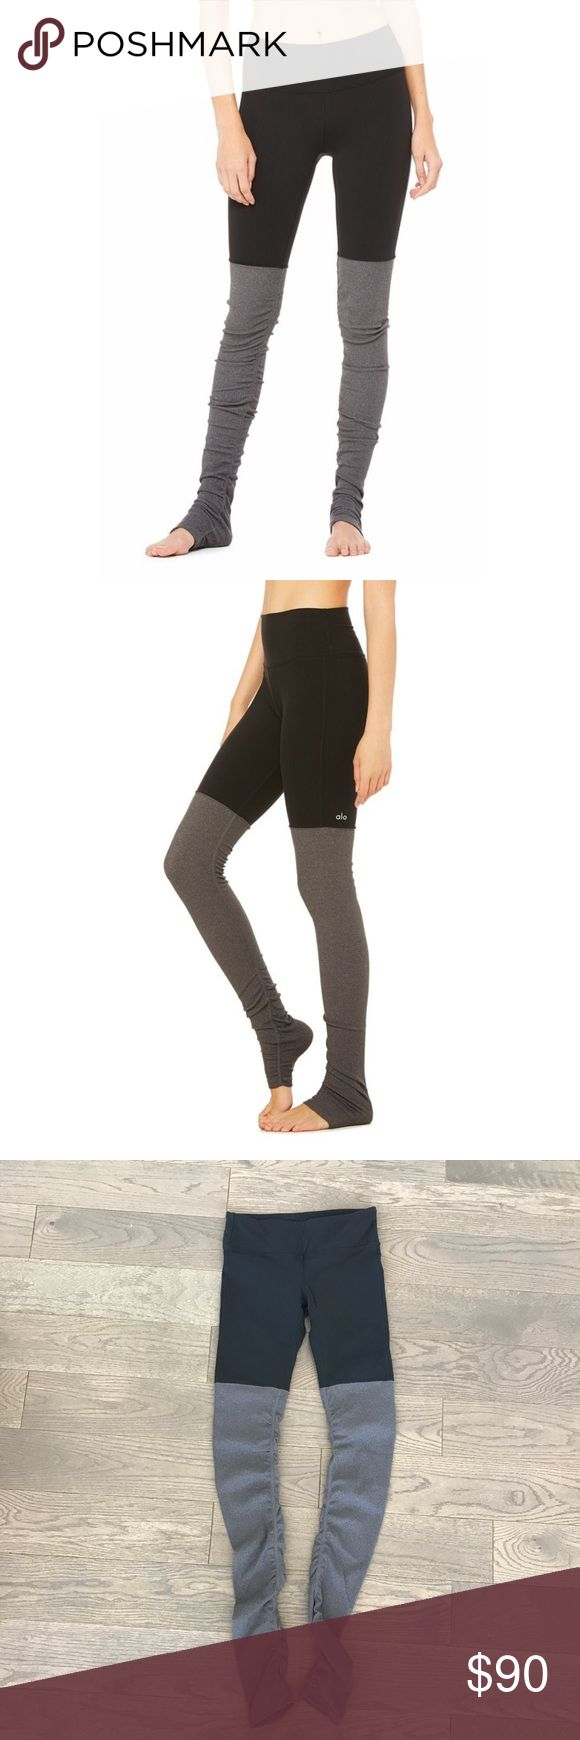 """Alo Yoga Goddess Legging in Black and Grey Tights worth worshipping, fit for a goddess like you. Our patent-pending Goddess Ribbed Legging features ultimate performance fabric that slims inner and outer thighs and seriously lifts your booty. New waistband engineering is tummy flattening and super flattering. Worn once once for a workout with the Alo team. In perfect condition. Front rise is 8 1/2"""".  NO TRADES. ALO Yoga Pants Leggings"""